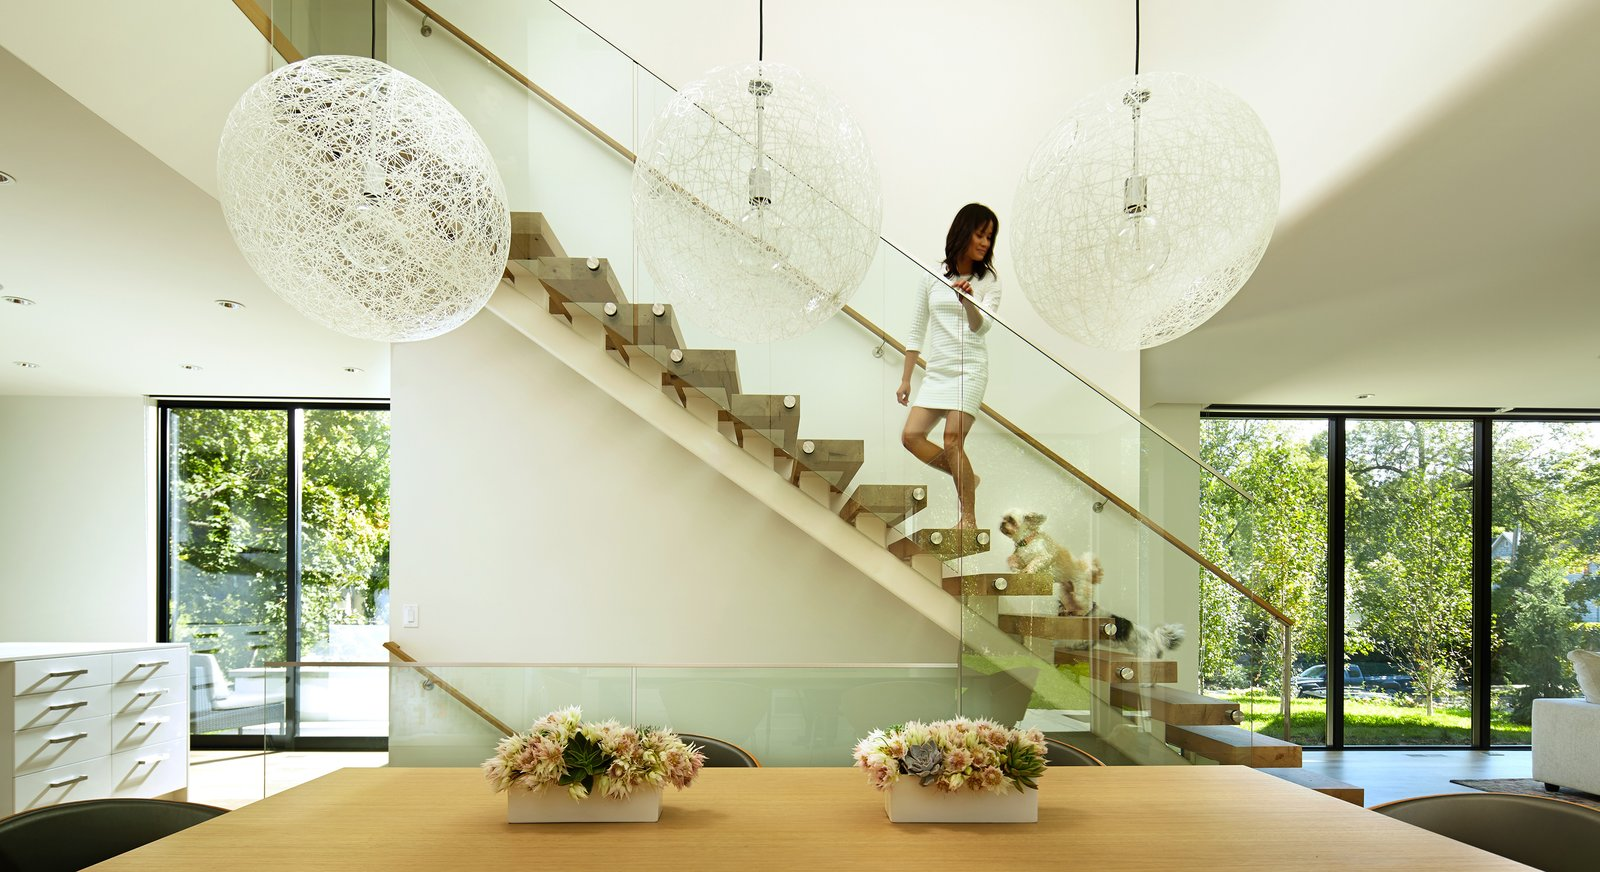 Staircase, Wood Tread, and Glass Railing  Sheridan Residence by Peterssen/Keller Architecture